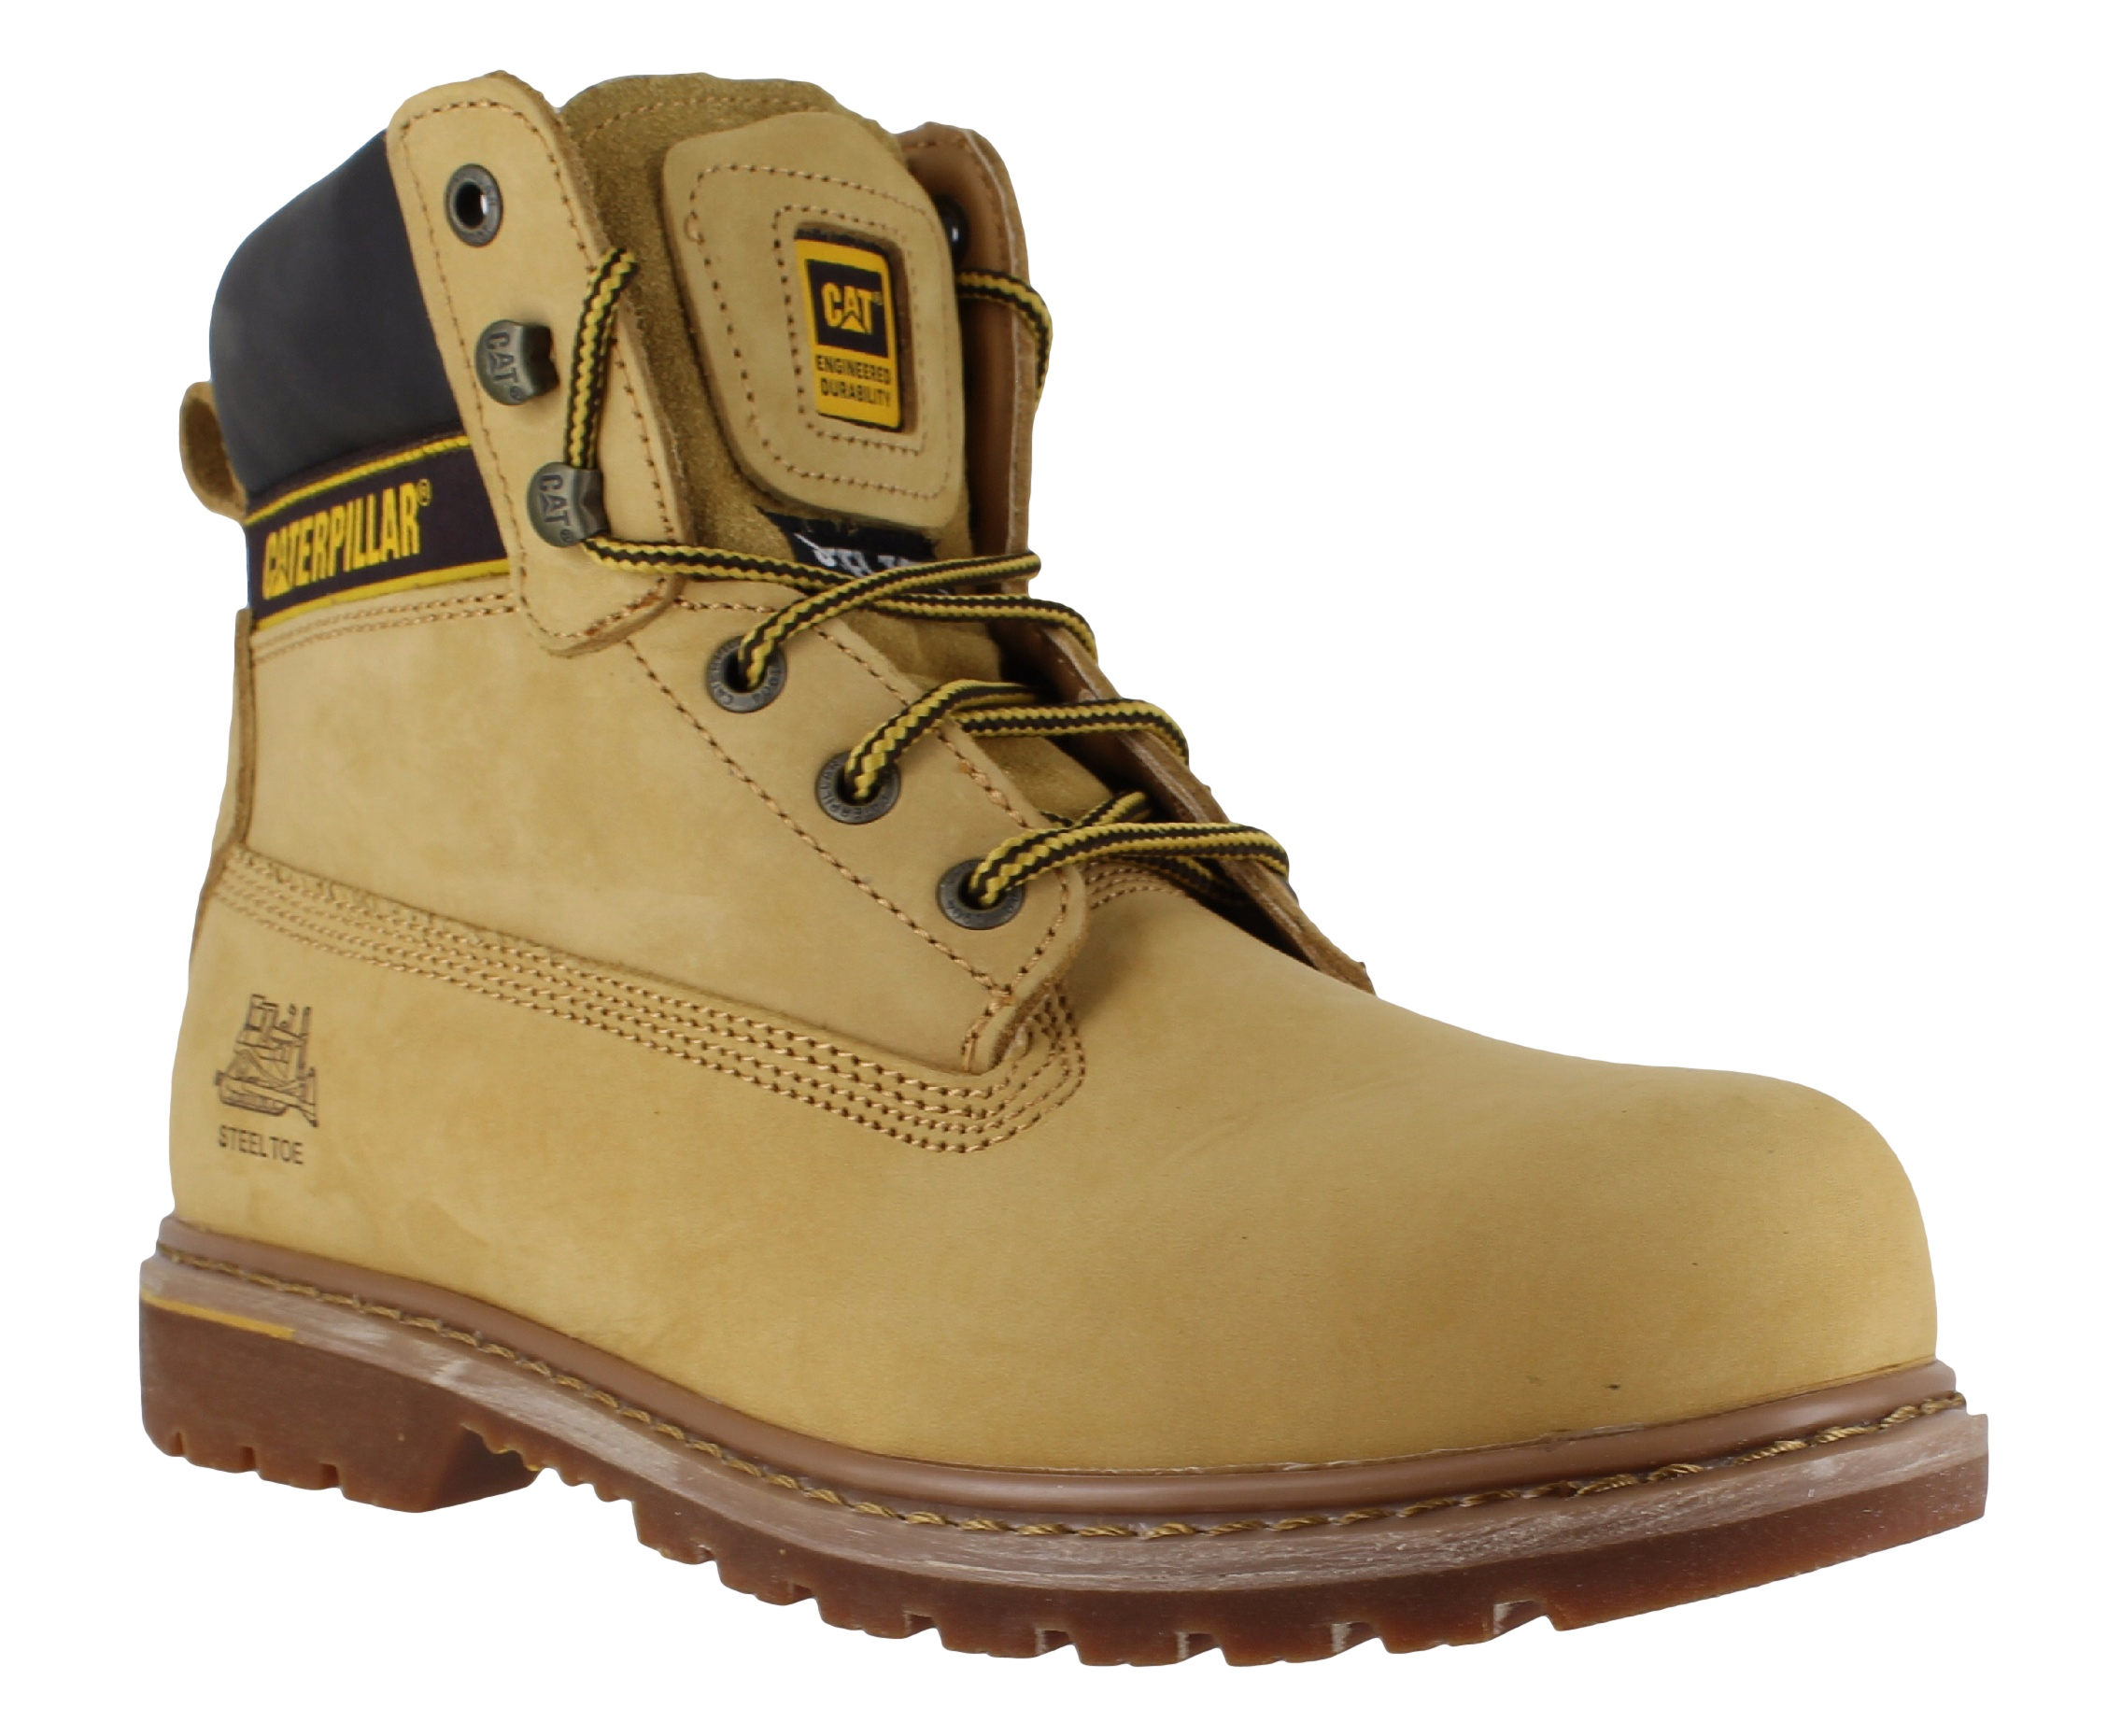 683ac552025de Caterpillar Holton Mens Honey/Yellow SB Safety Steel Toe Cap Lace Up Work  Boots